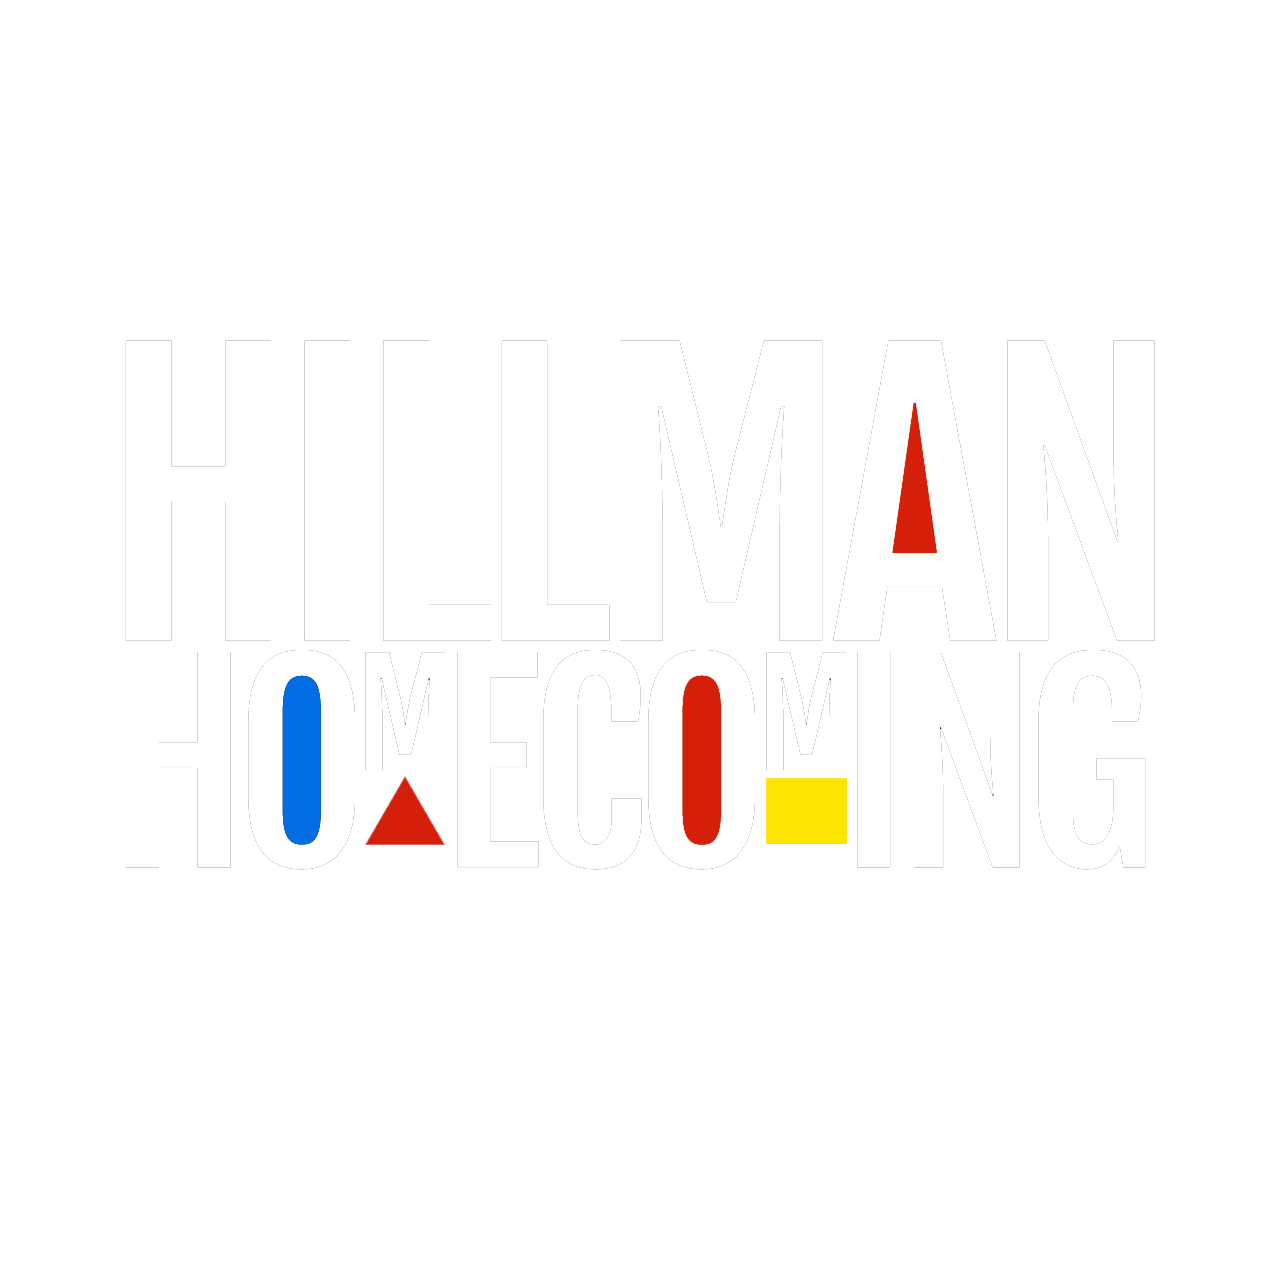 Hillman Homecoming